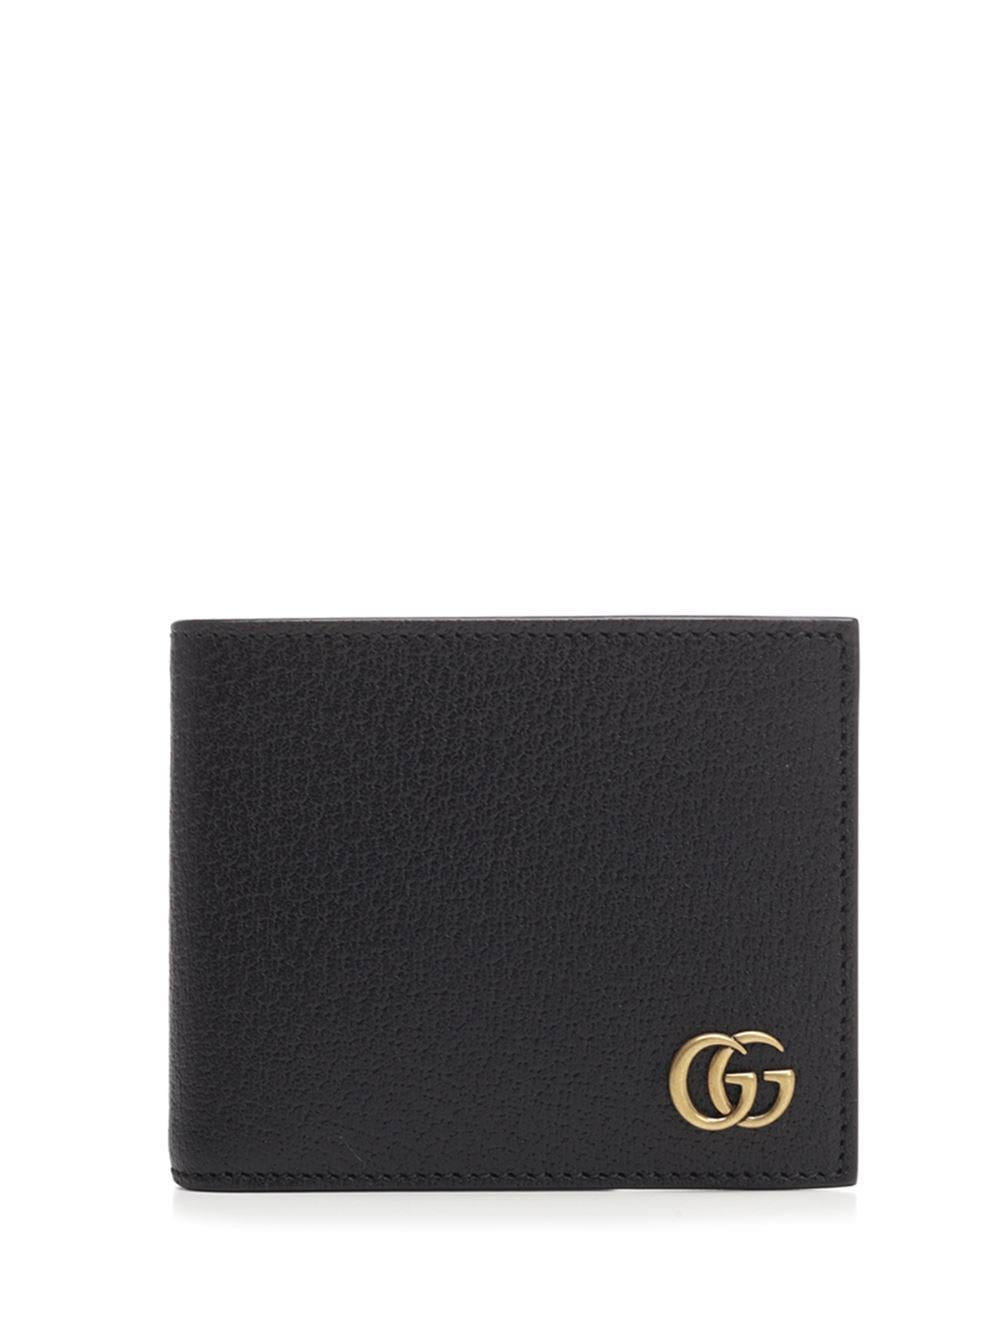 Gucci Gg Marmont Bifold Wallet In Black